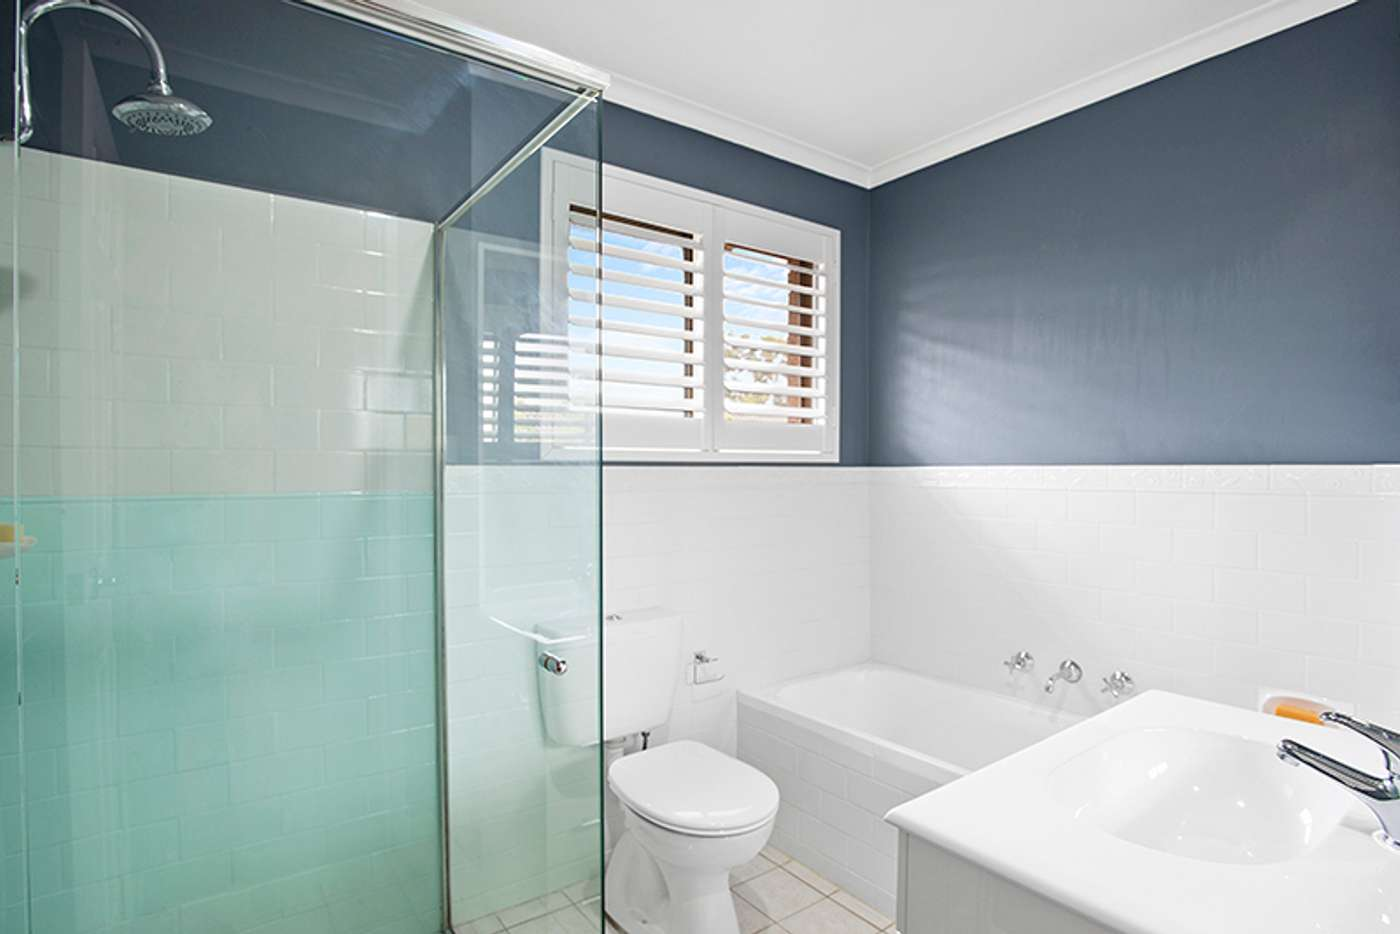 Fifth view of Homely apartment listing, 9/39-41 Victoria Road, Parramatta NSW 2150